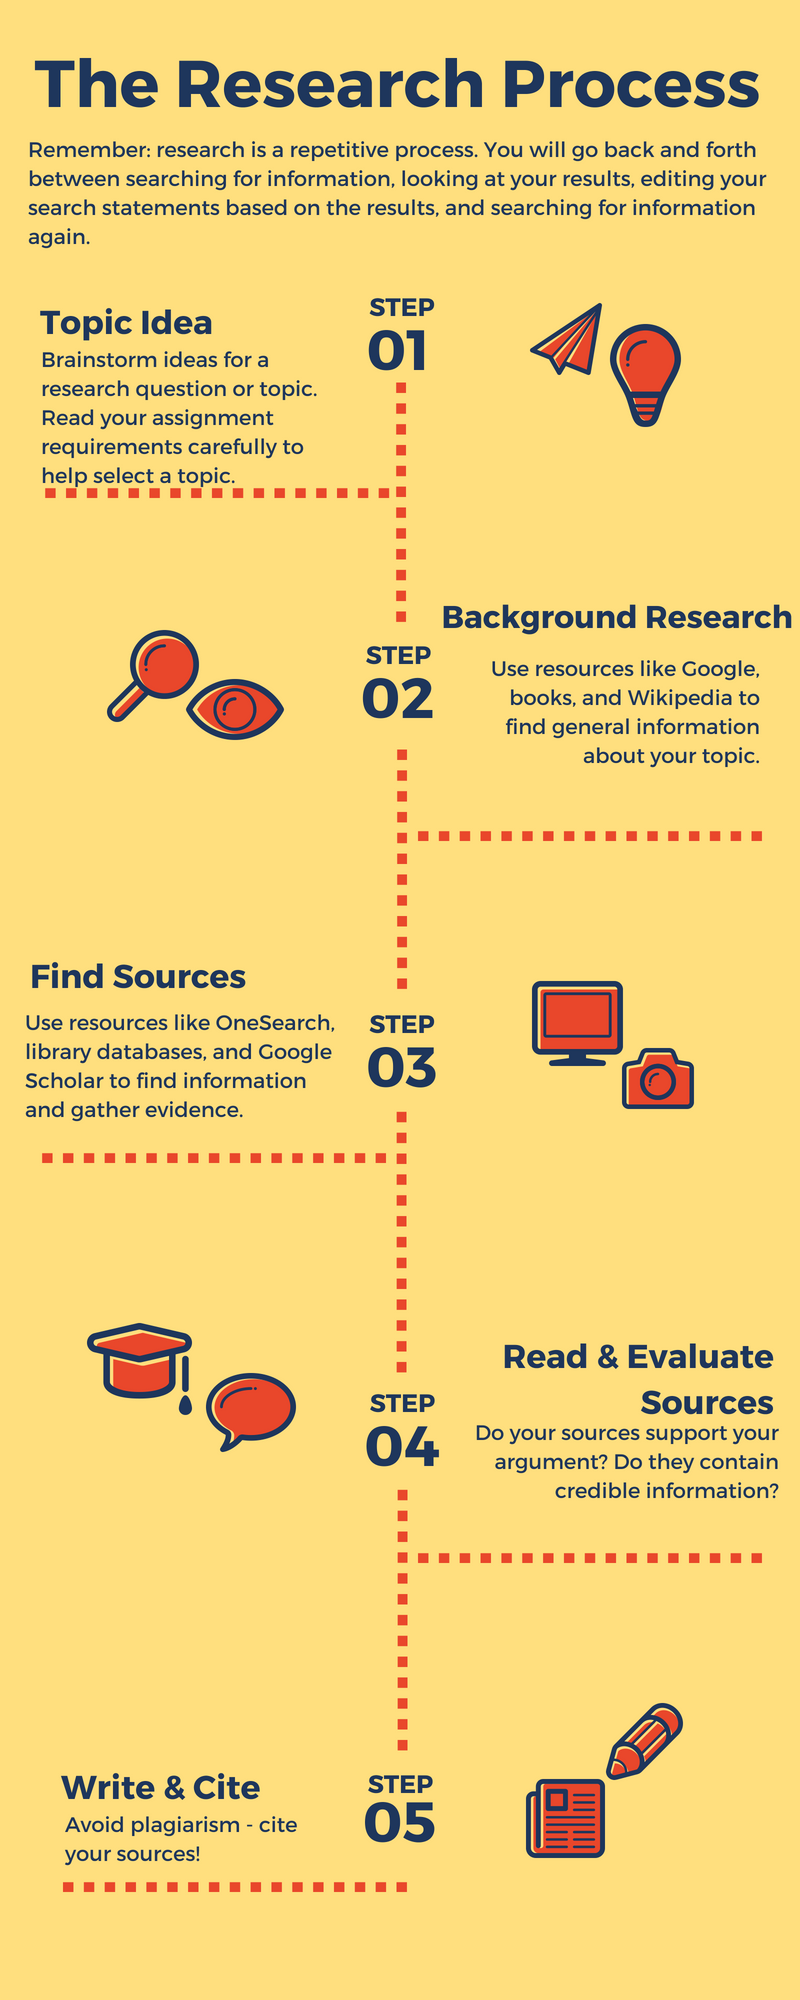 Flow chart of the Research process. 1 Topic Idea, 2 Background Research, 3 Find Sources, 4 Read and Evaluate Sources, 5 Cite and Write